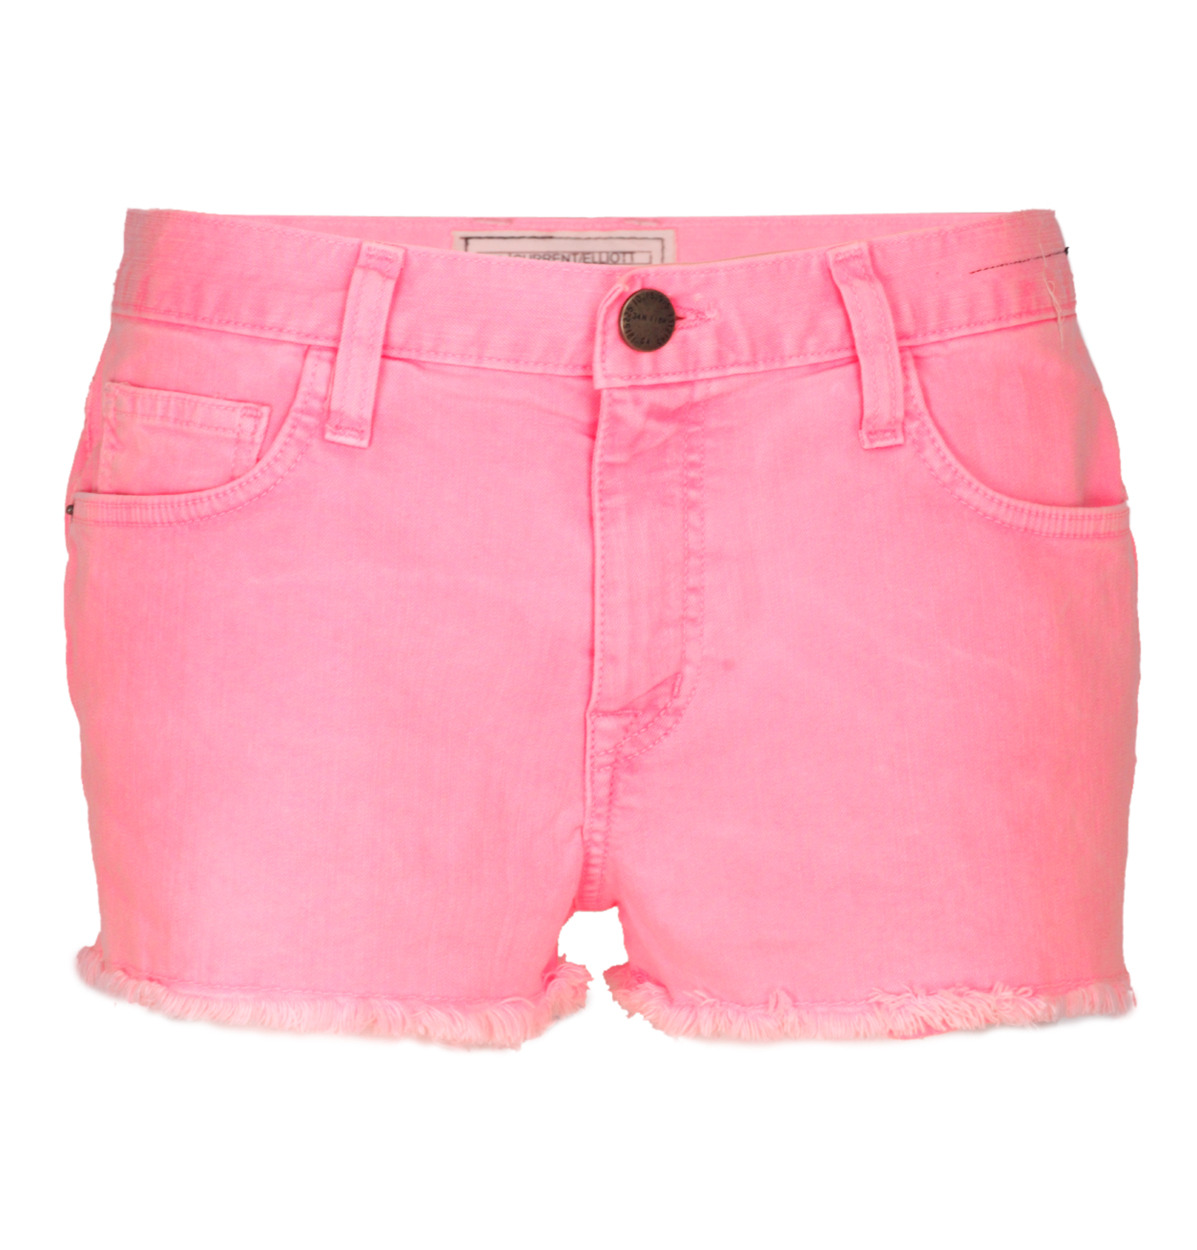 Current/Elliott The Boyfriend Denim Shorts - style: shorts; pocket detail: traditional 5 pocket; length: short shorts; waist: mid/regular rise; predominant colour: pink; occasions: casual; fibres: cotton - stretch; material texture: denim; waist detail: narrow waistband; trends: brights; texture group: denim; fit: slim leg